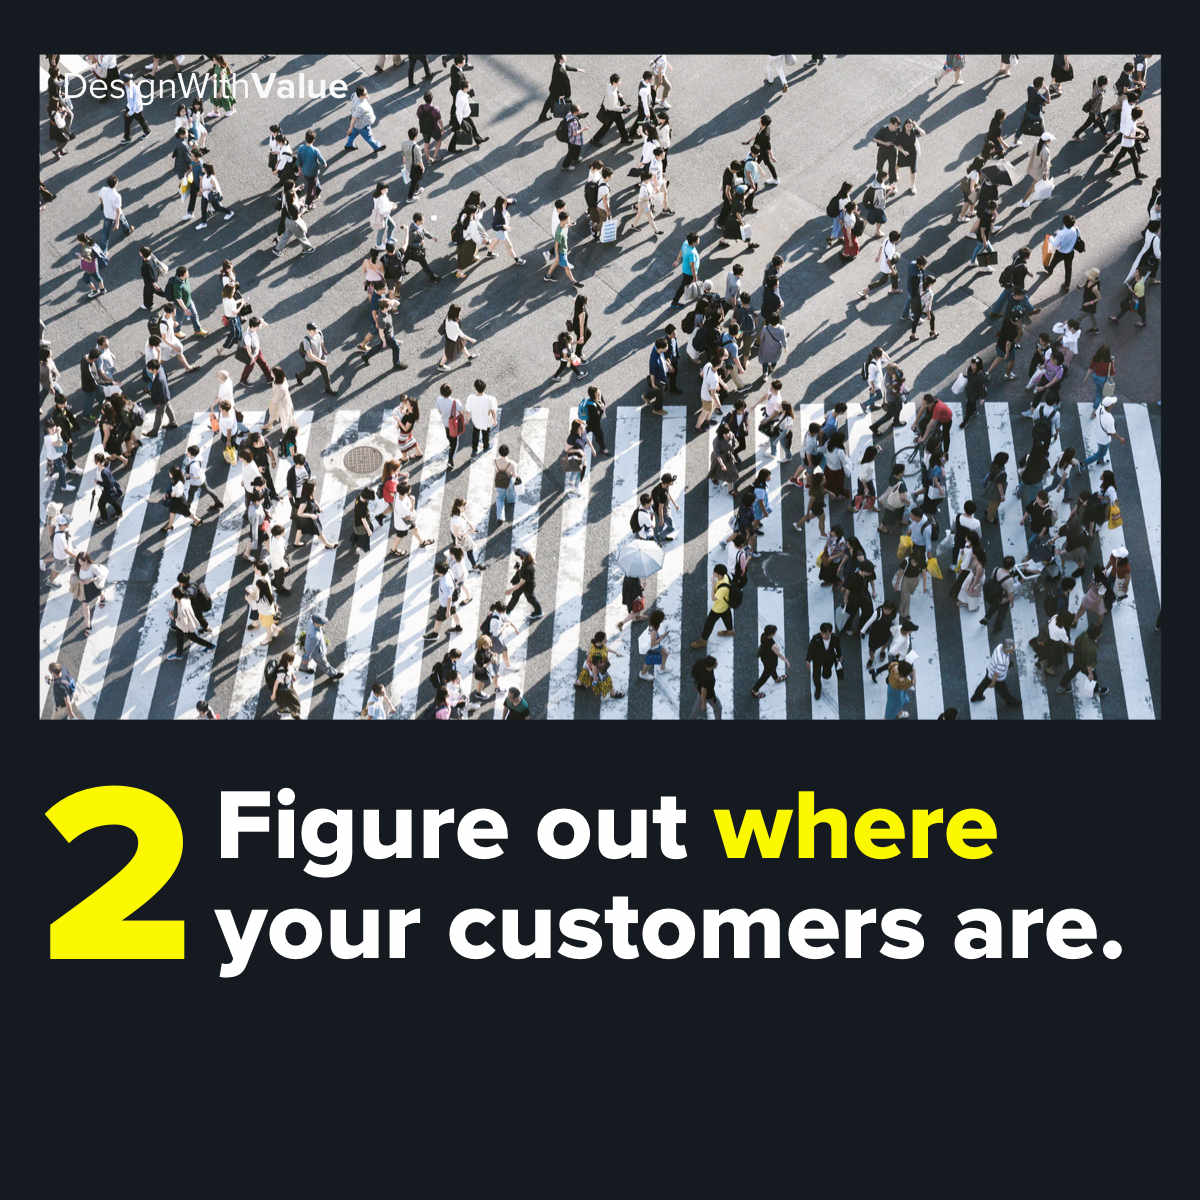 Second figure out where your customers are